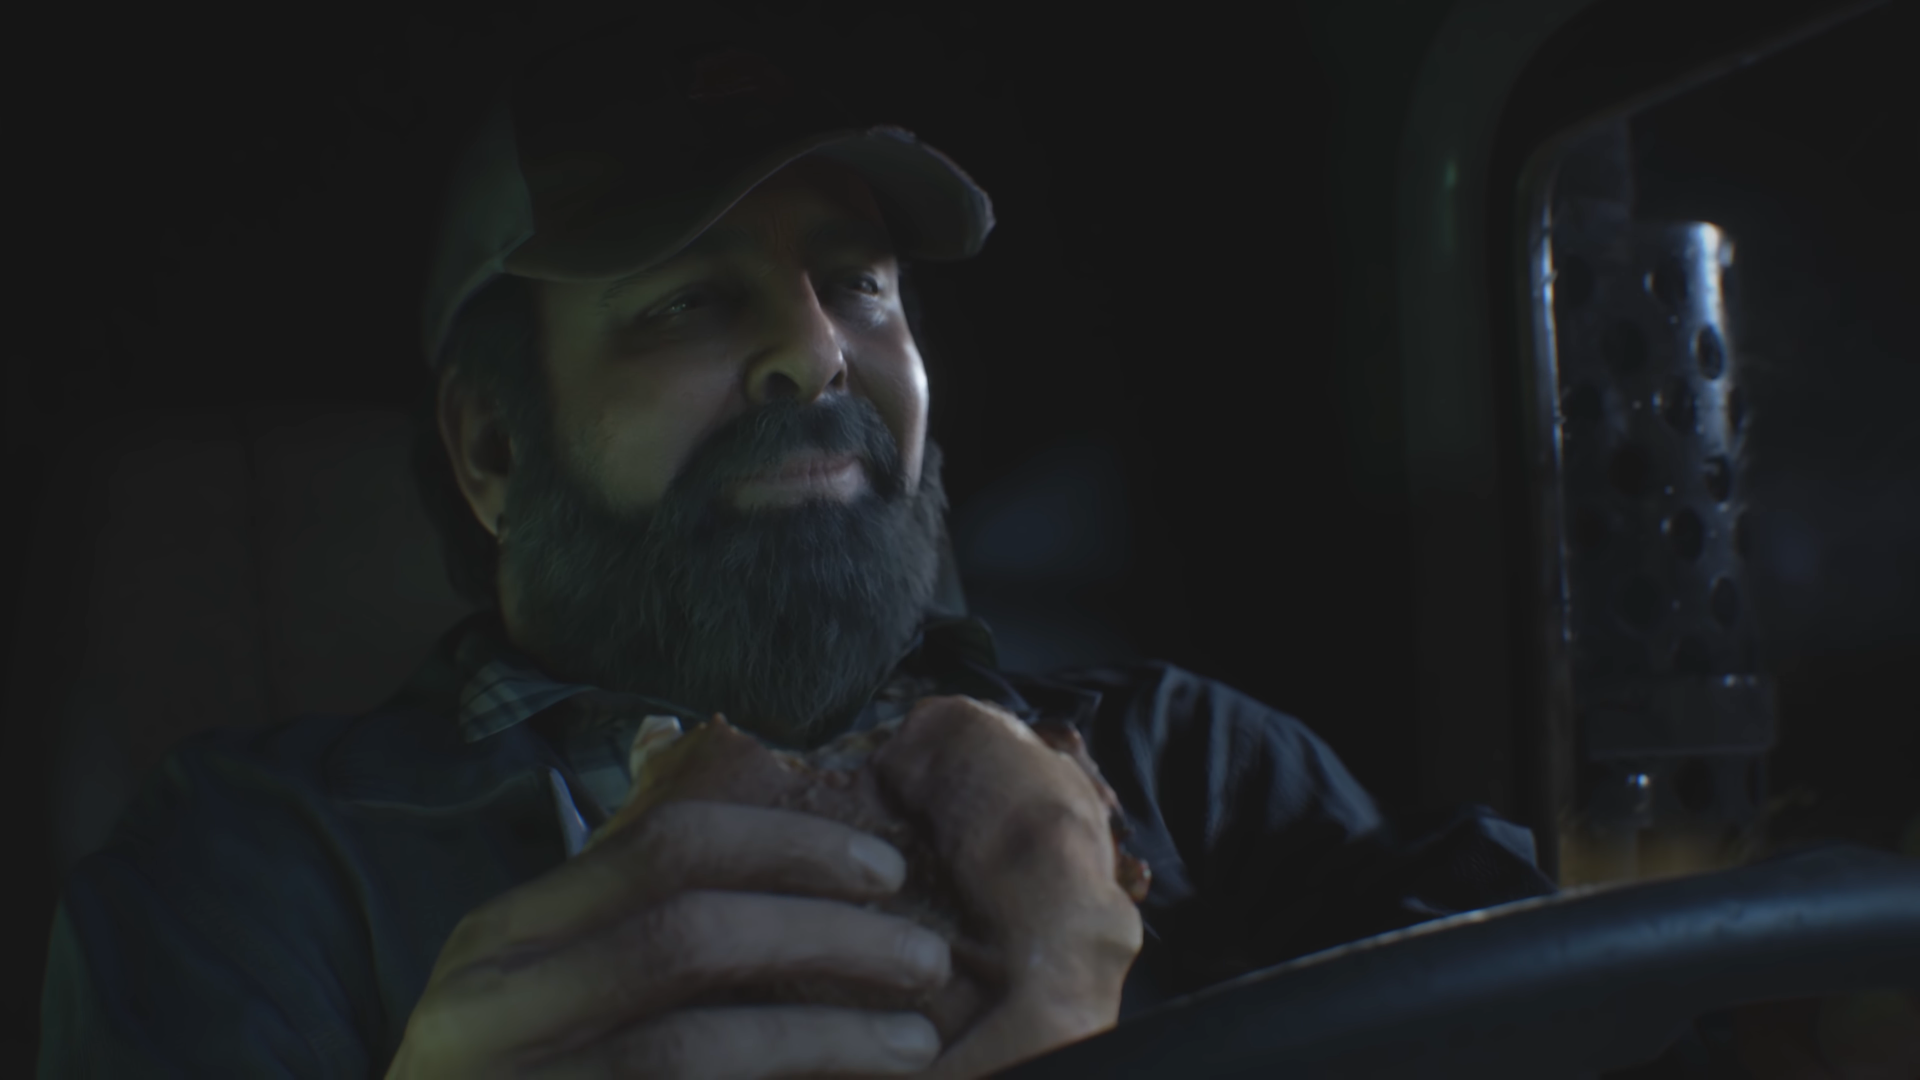 Unnamed truck driver | Resident Evil Wiki | FANDOM powered by Wikia